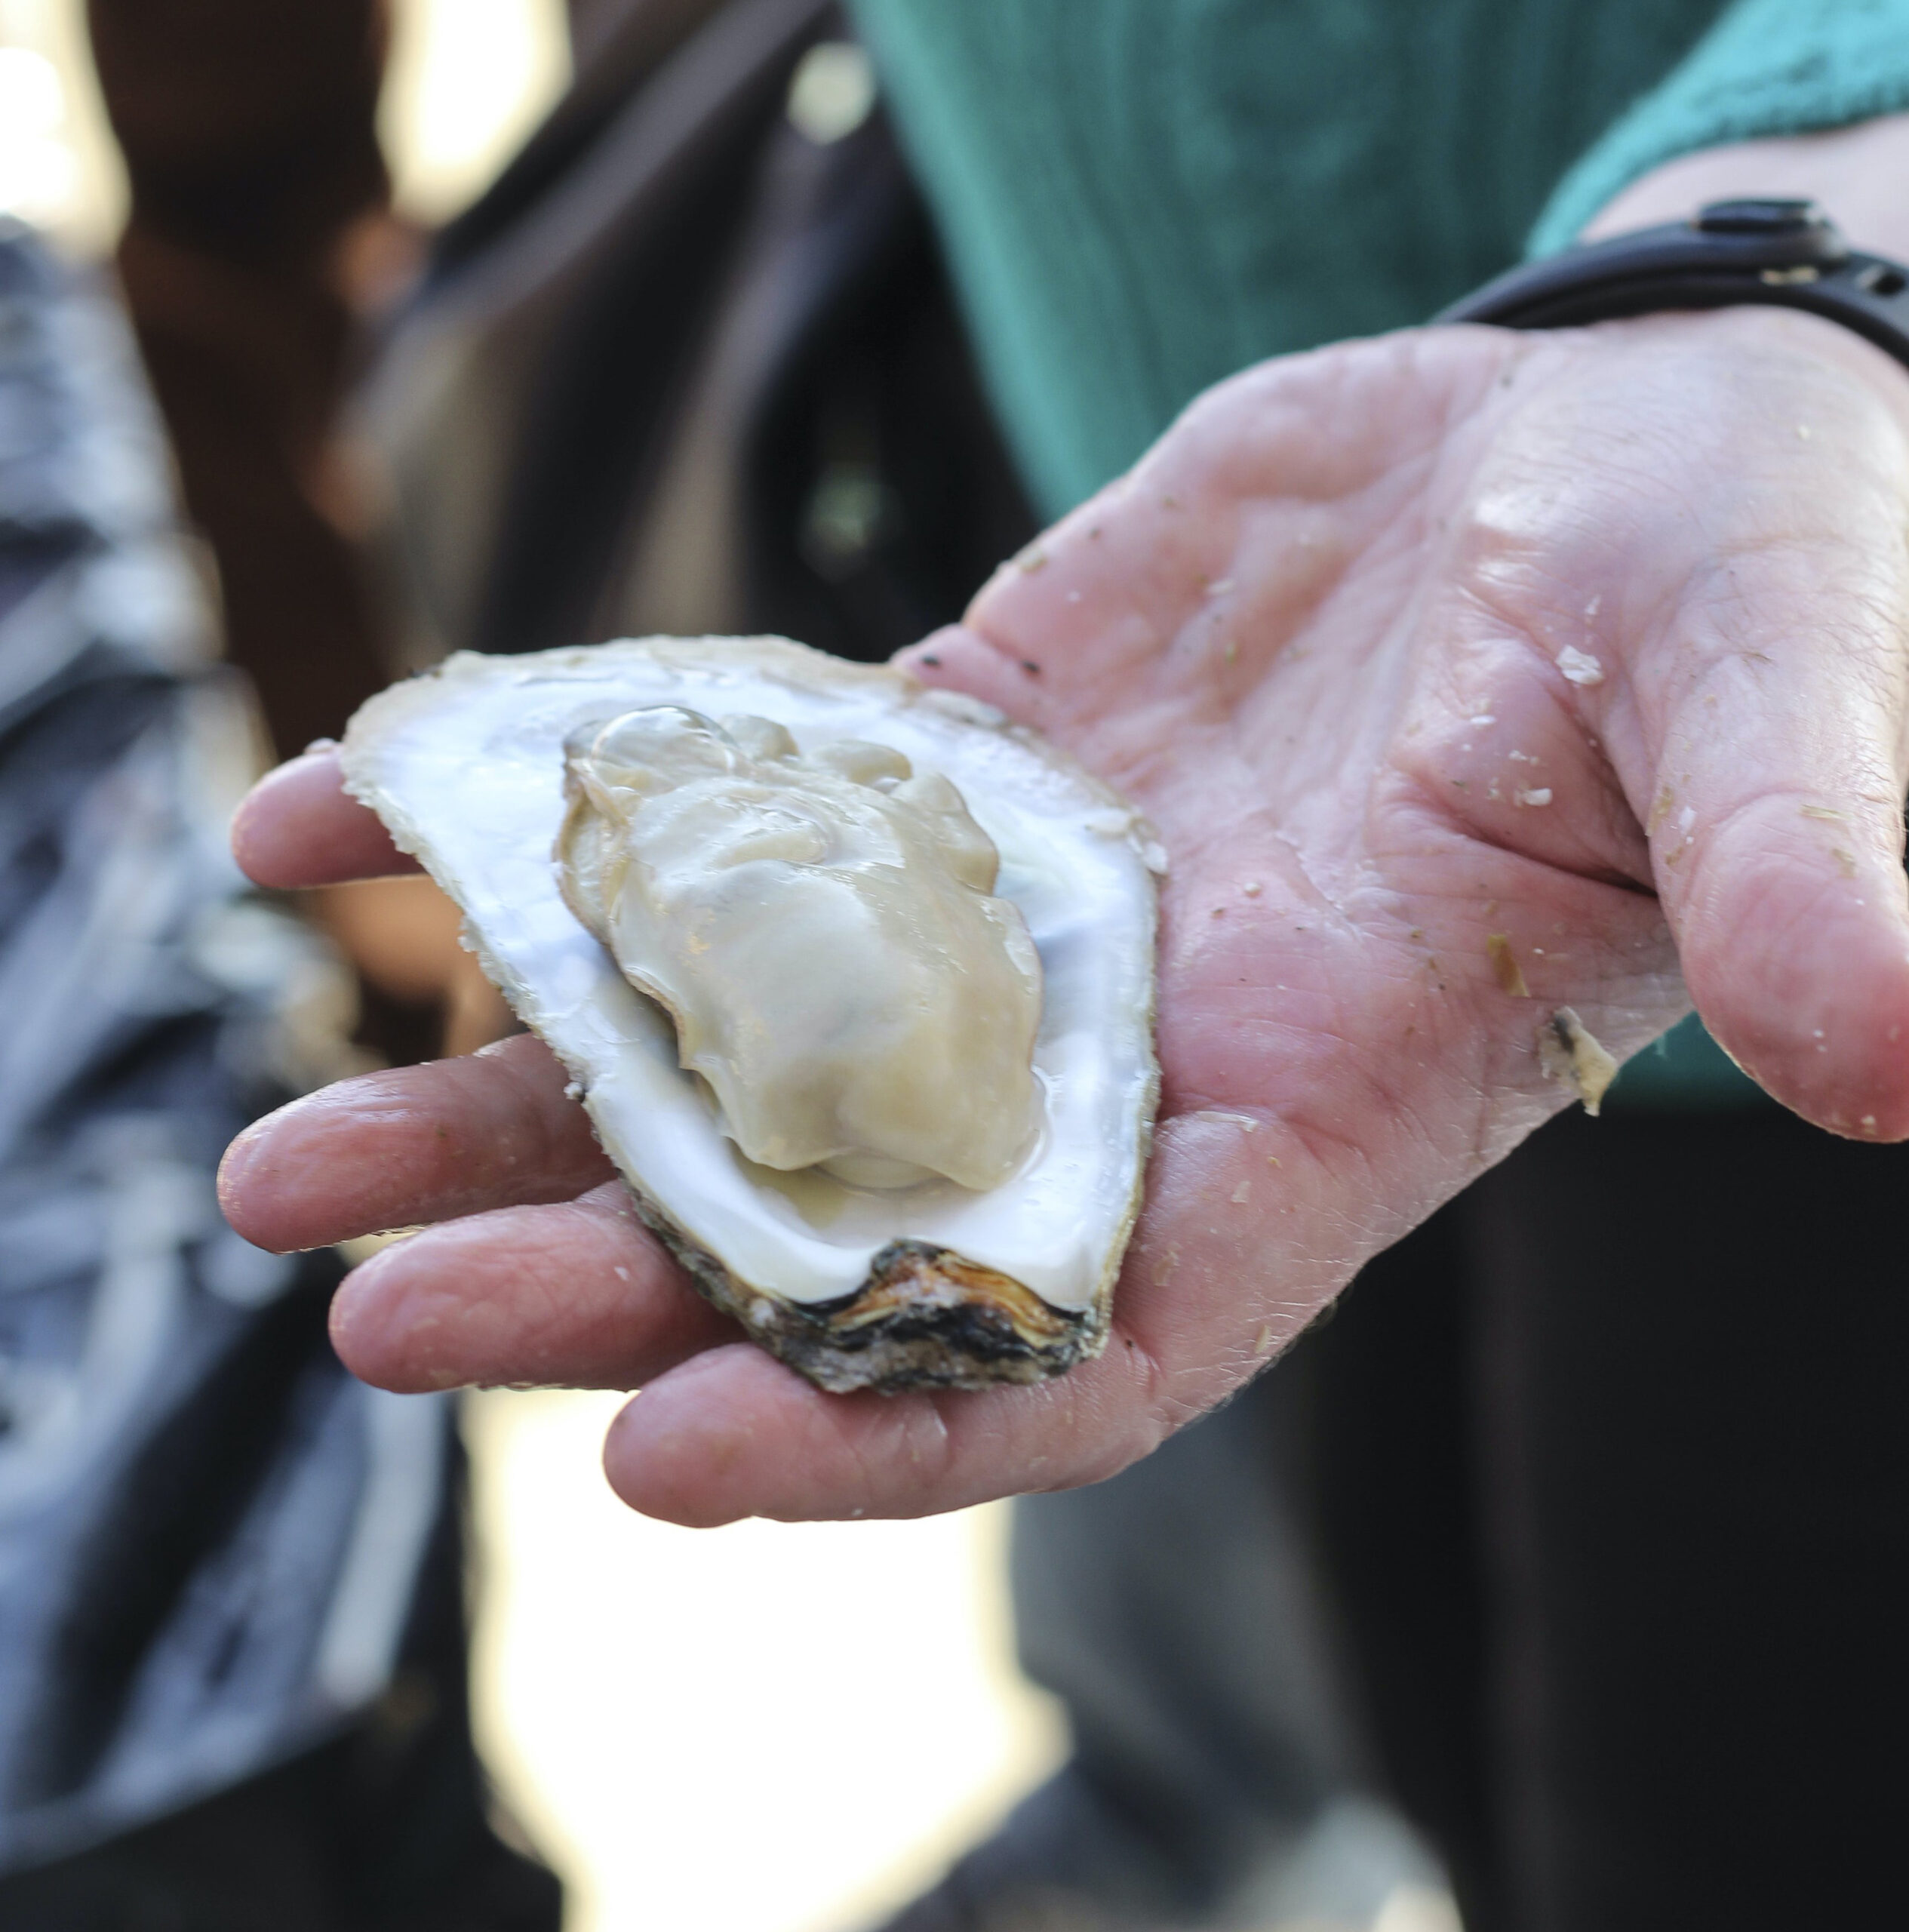 A shucked oyster in someone's hand.